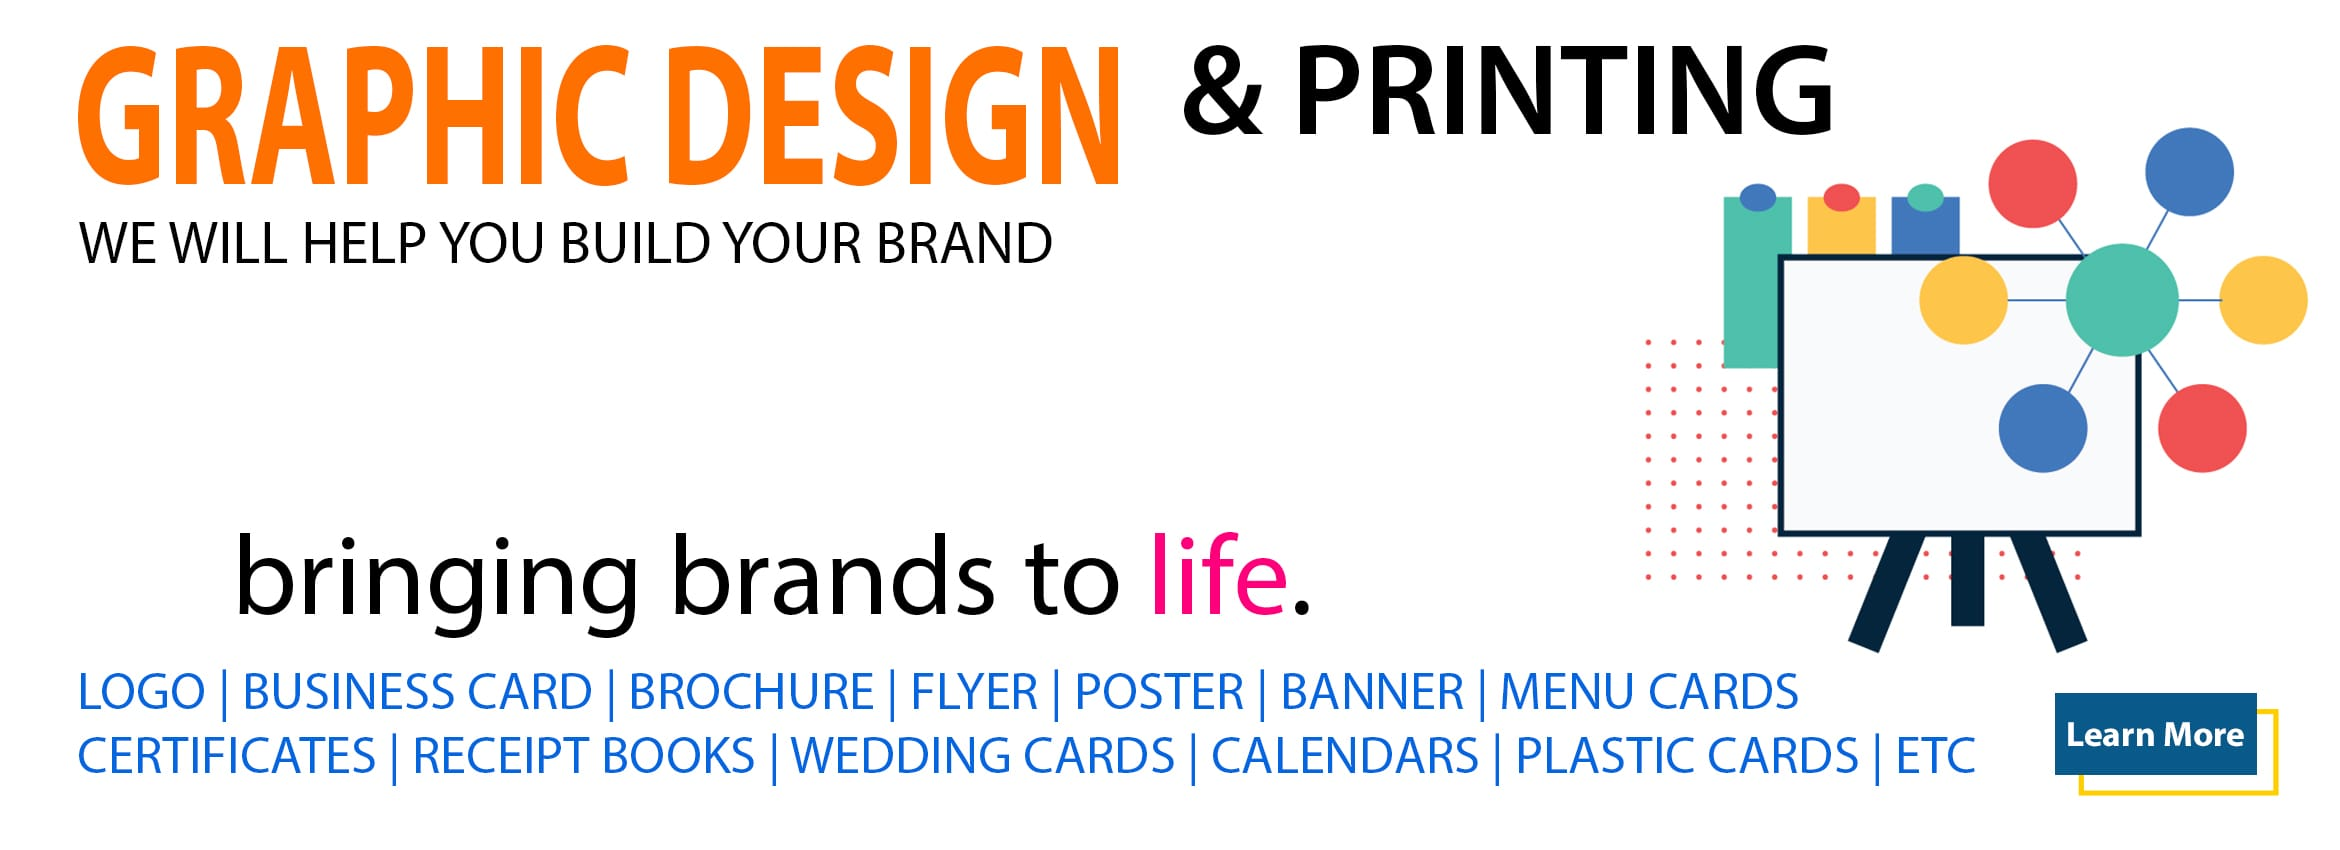 Graphics Design and Printing